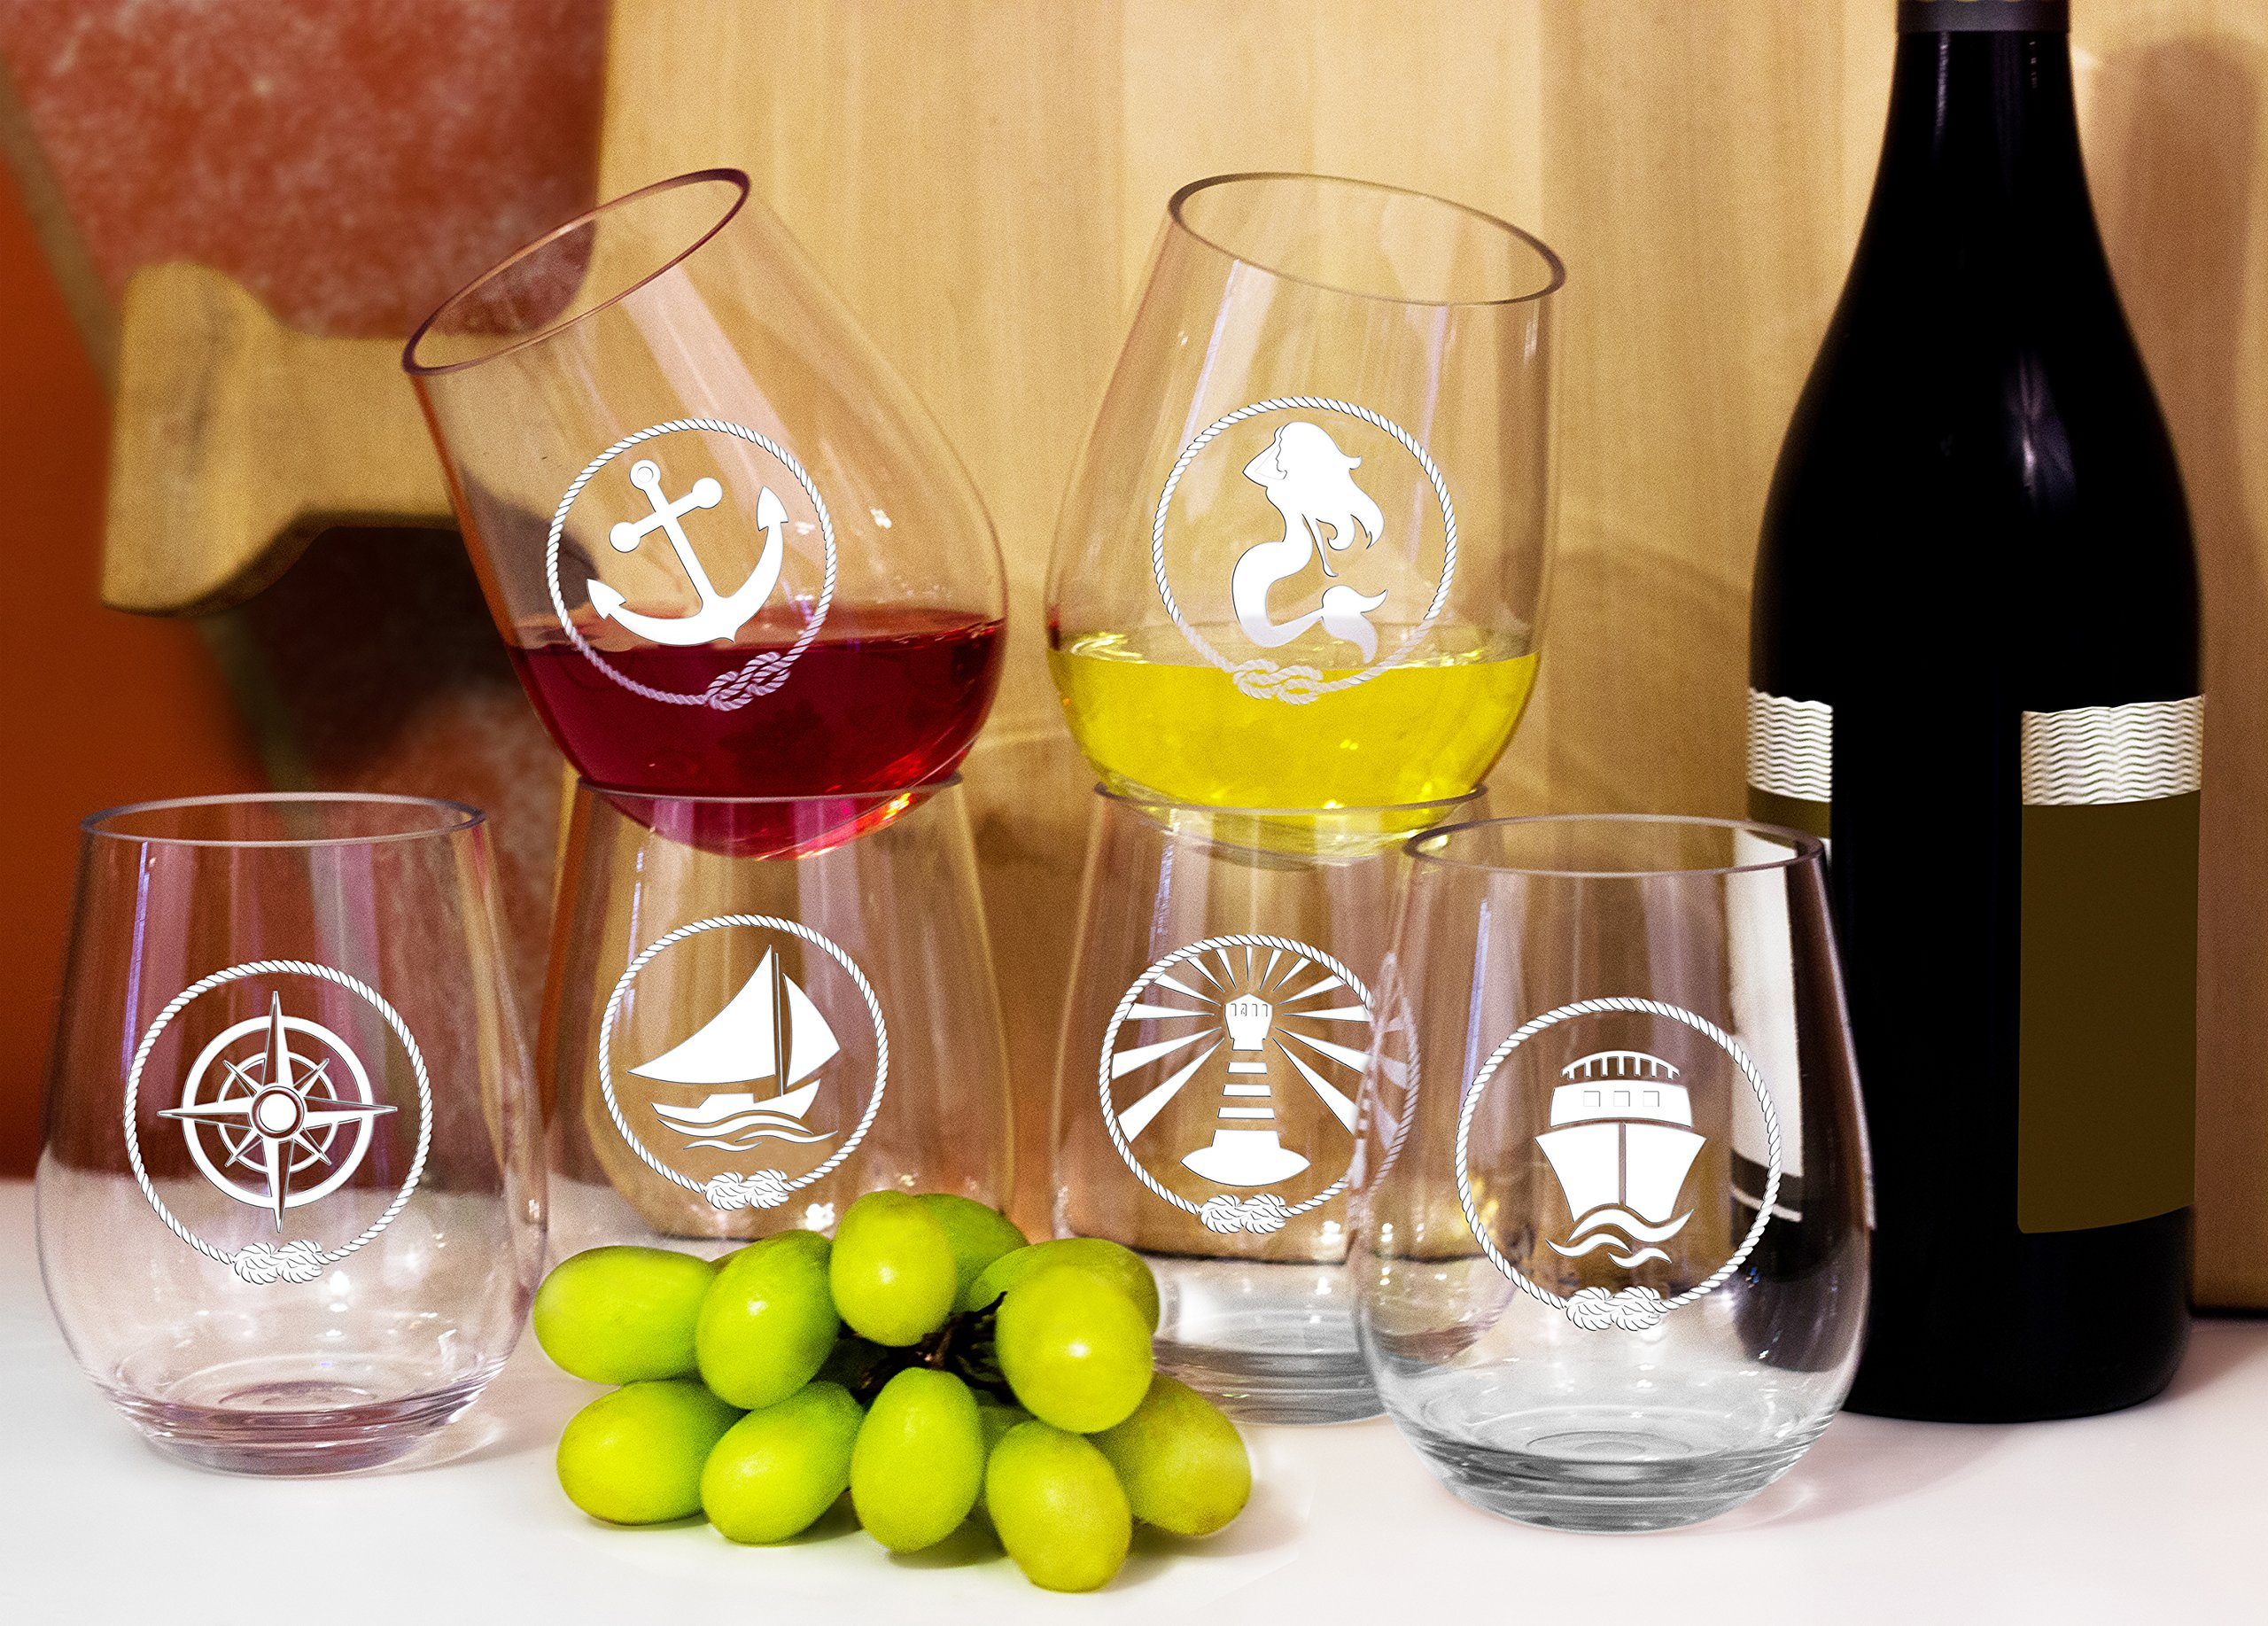 SET OF 6 -Stemless Wine Glasses-Nautical Themed, Resturant Quility Plastic, 14oz, Best Shatter Proof Drinking Glass for Wine, Cocktails or gifts by DaJosie Co. (Image #8)